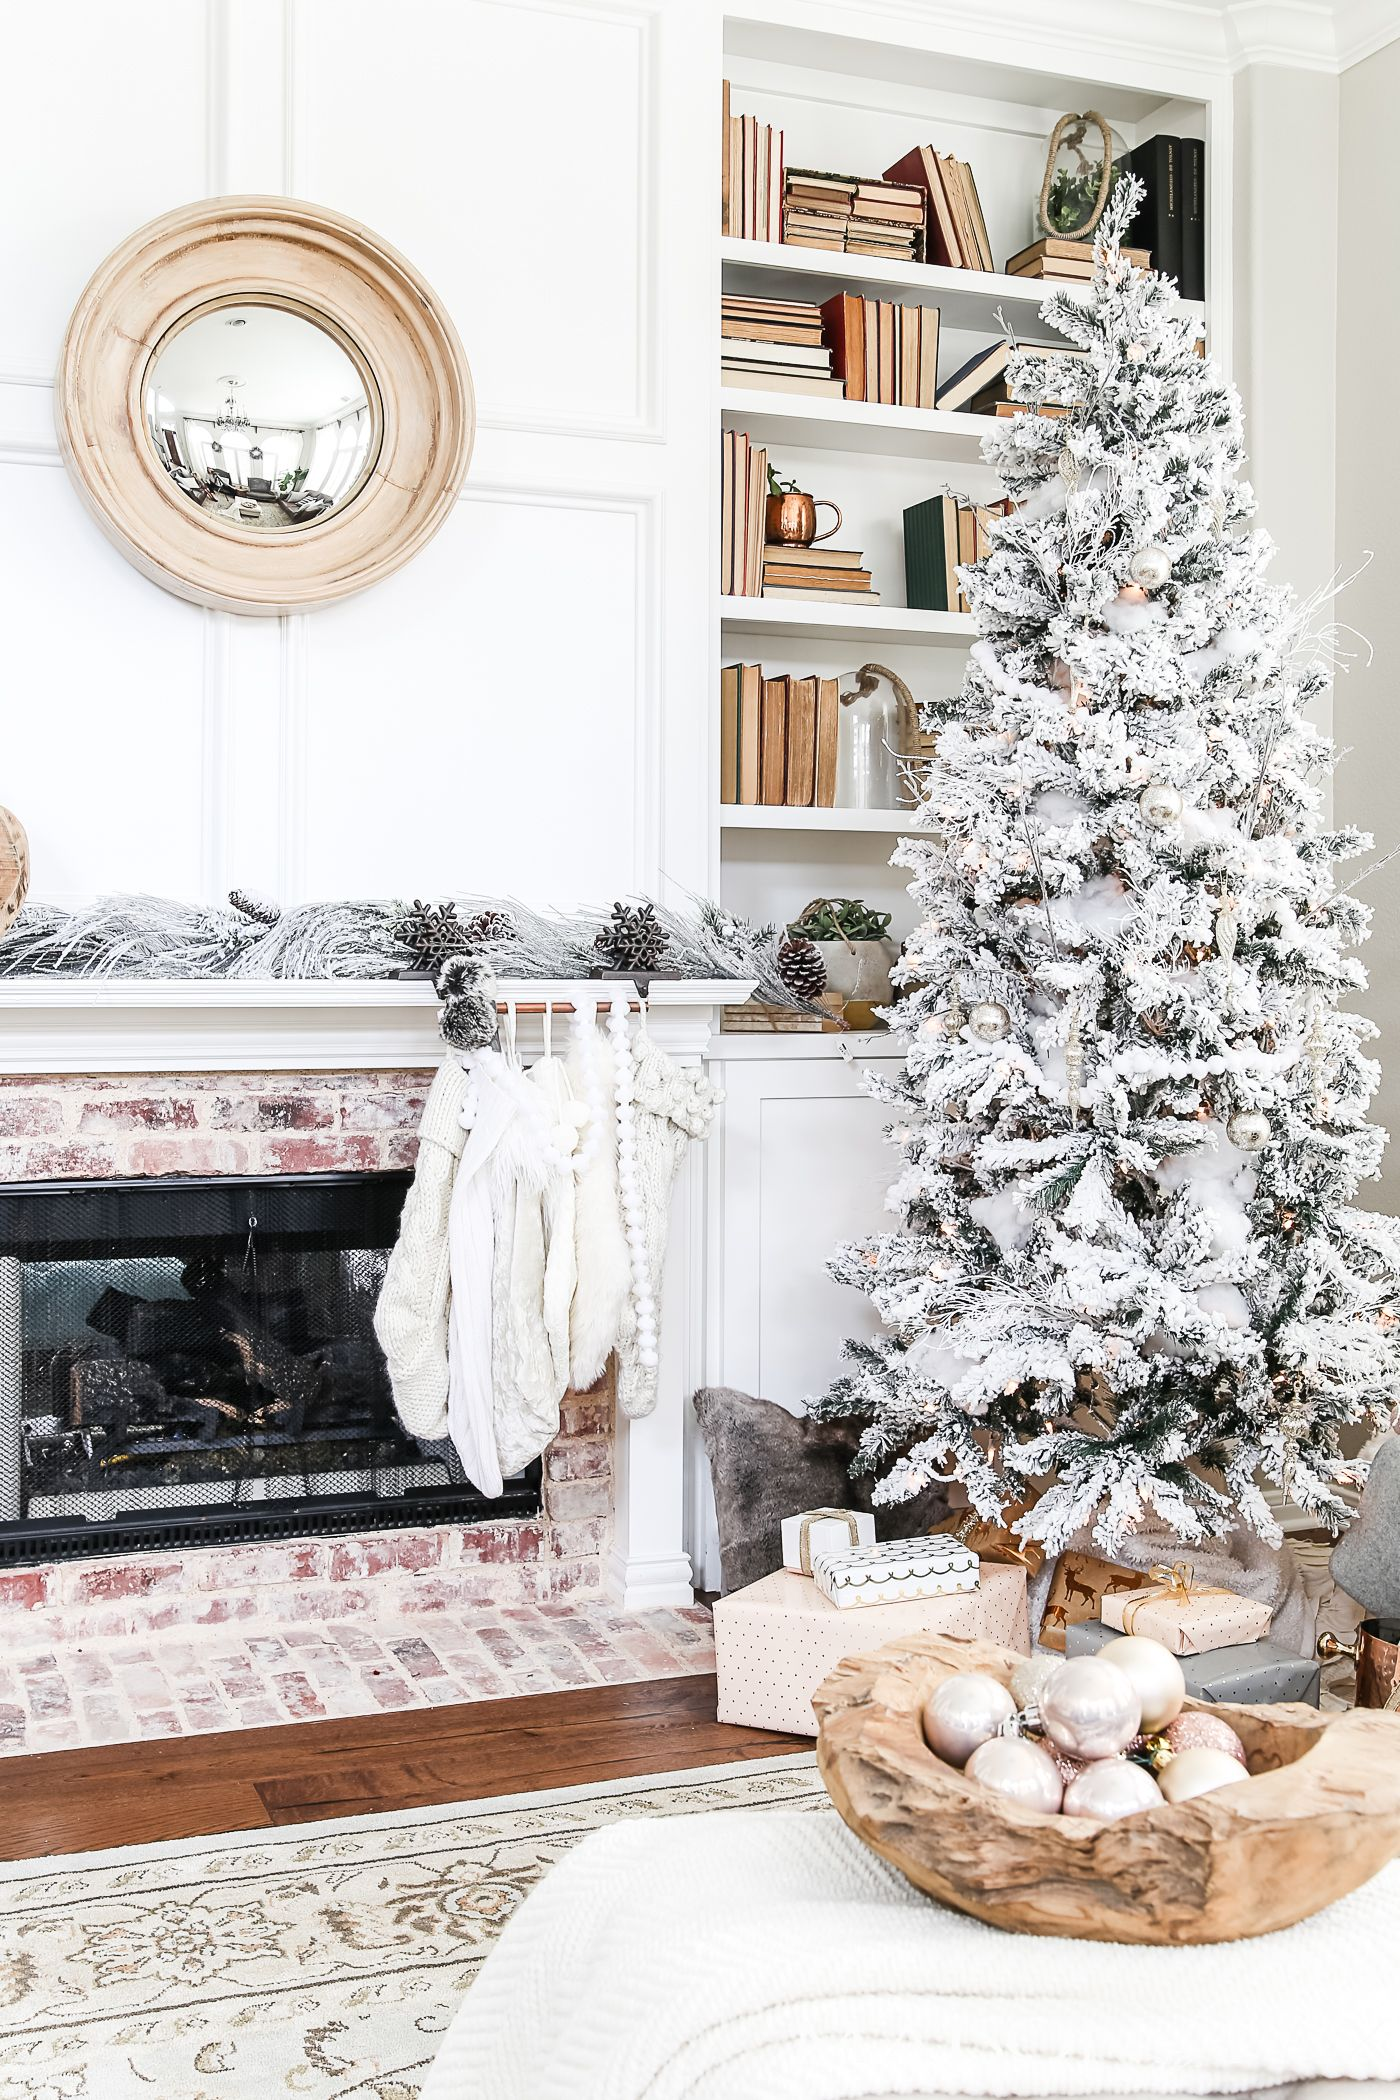 Simple Holiday Decorating: Christmas Home Tour | Ornament, Holidays ...